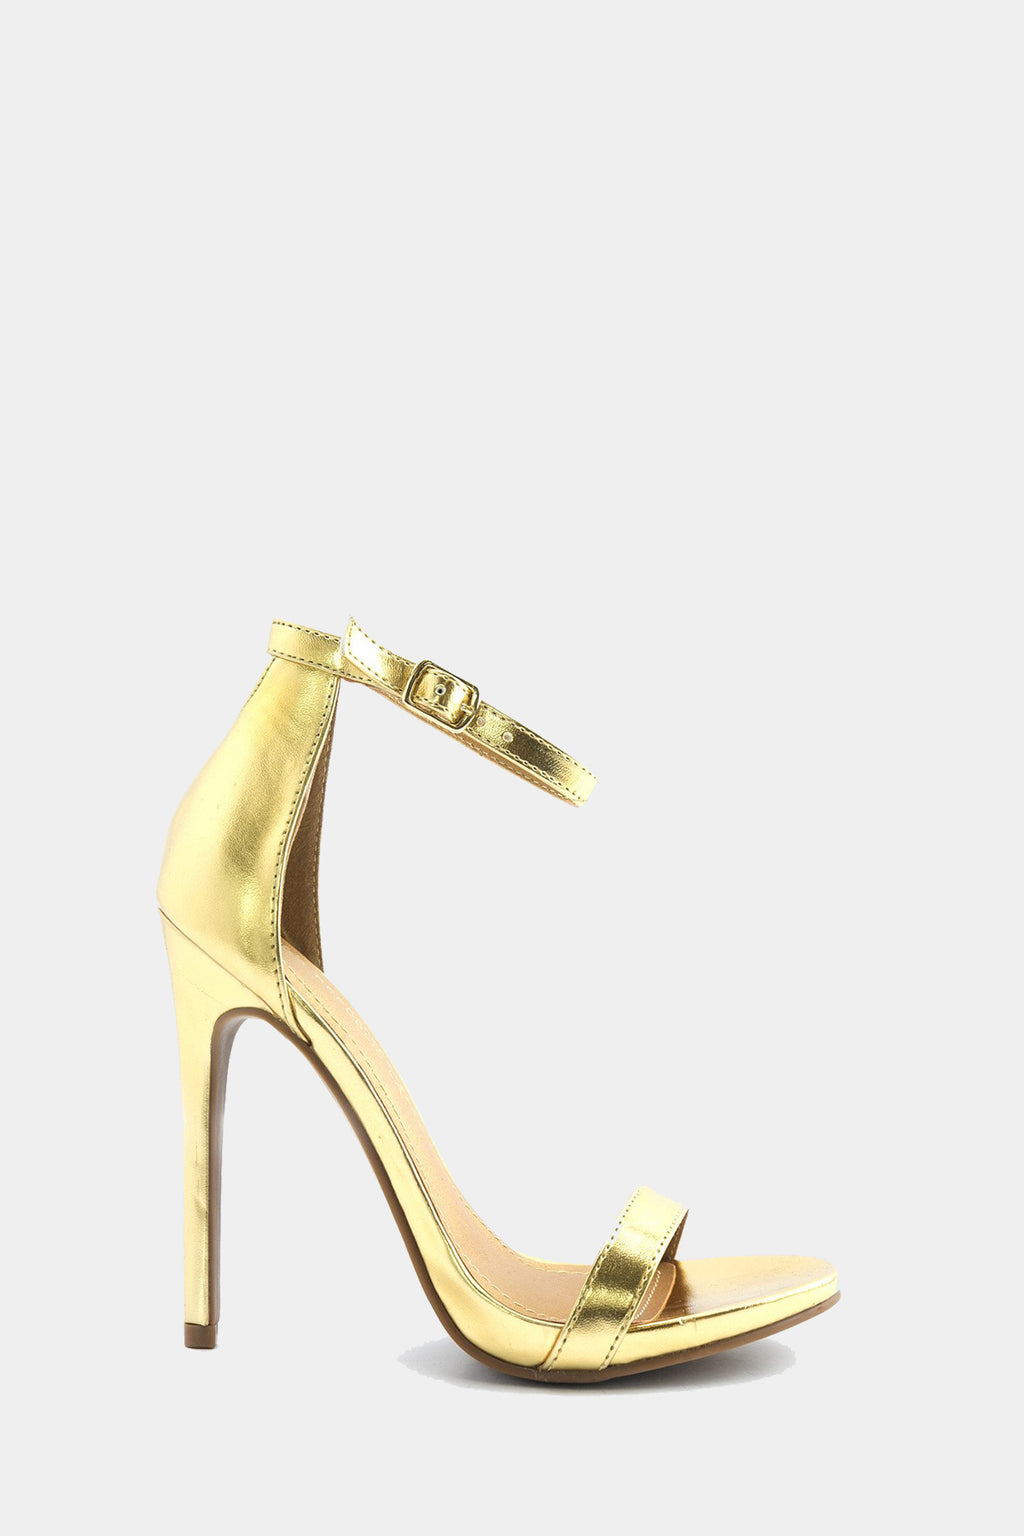 Celine Ankle Strap Heel - Gold /// Only Size 6 Left ///